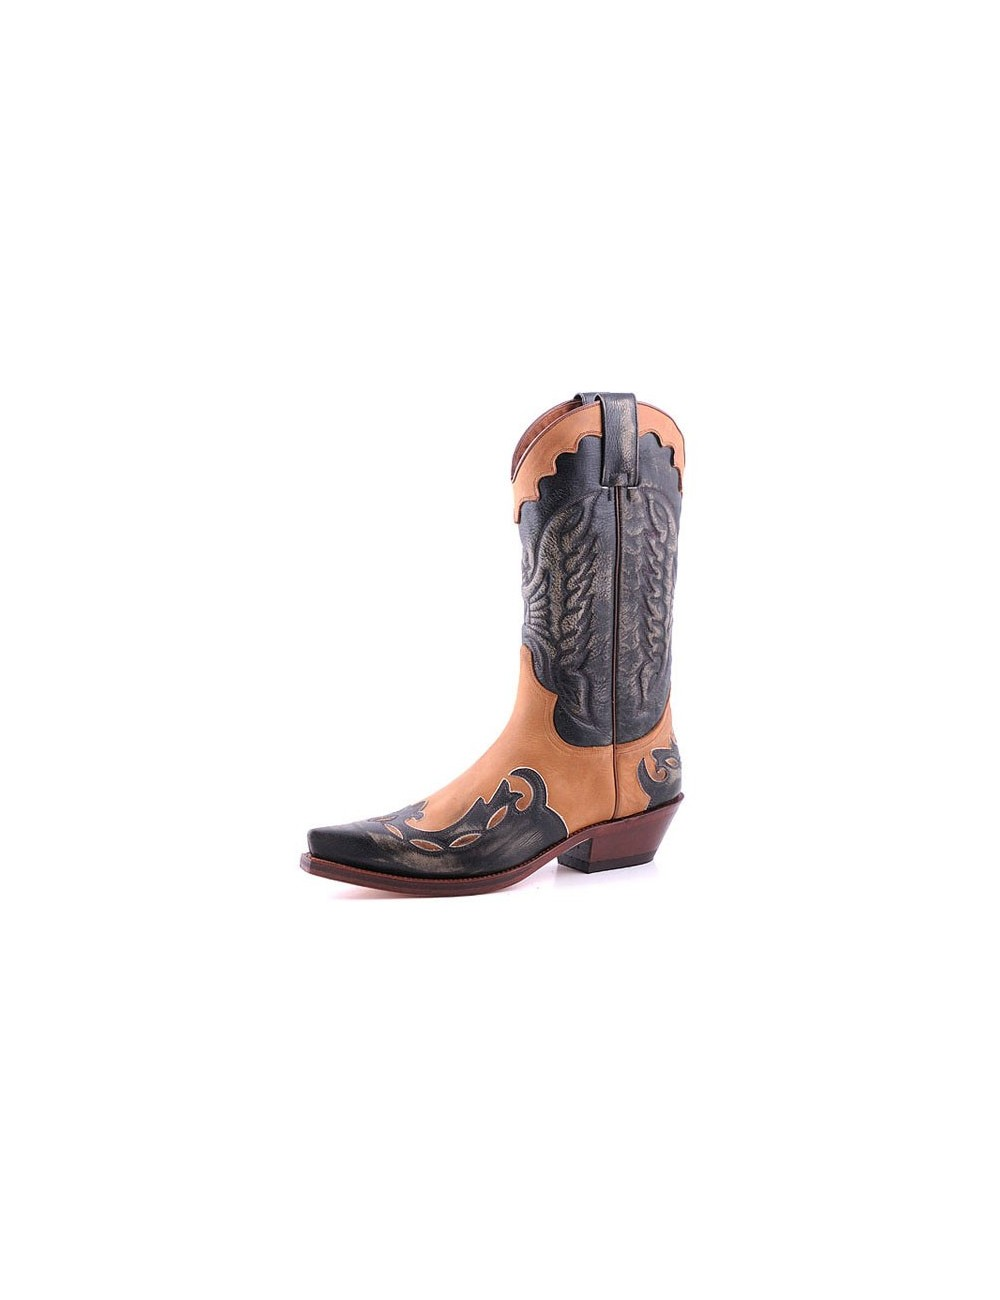 Bottes homme grande taille - Santiags mexicaines grandes tailles cuir